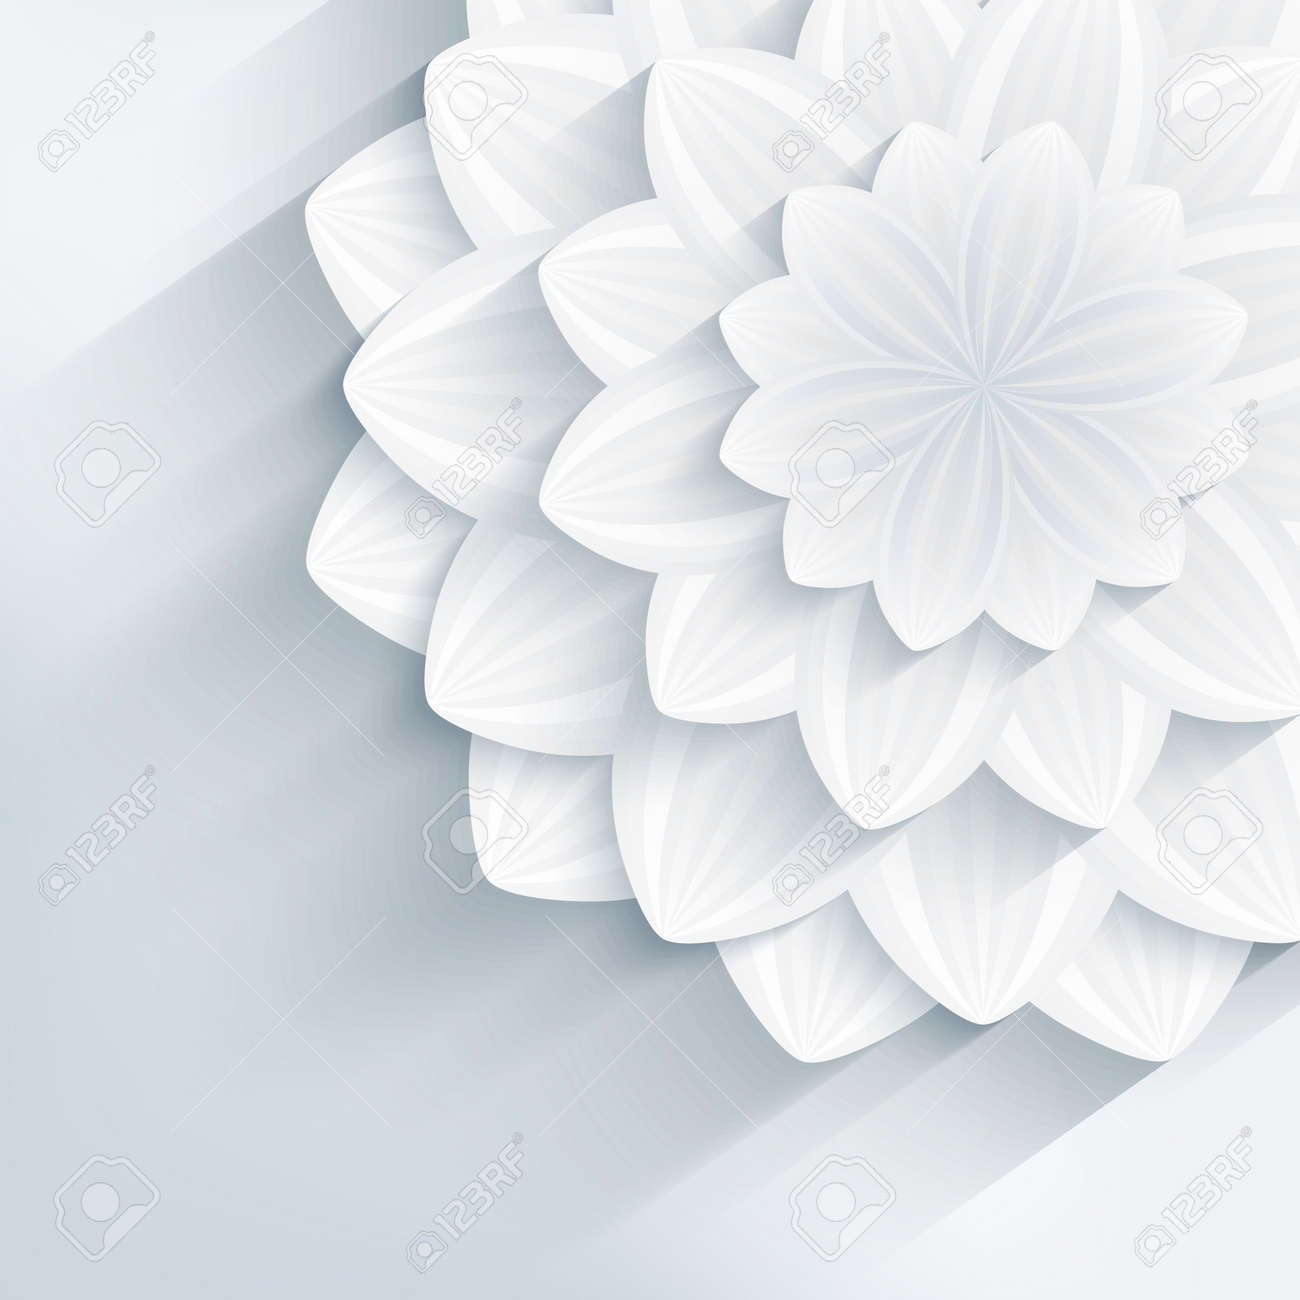 Floral Trendy Creative Background With White And Gray Stylized 3d Flower Beautiful Stylish Modern Wallpaper